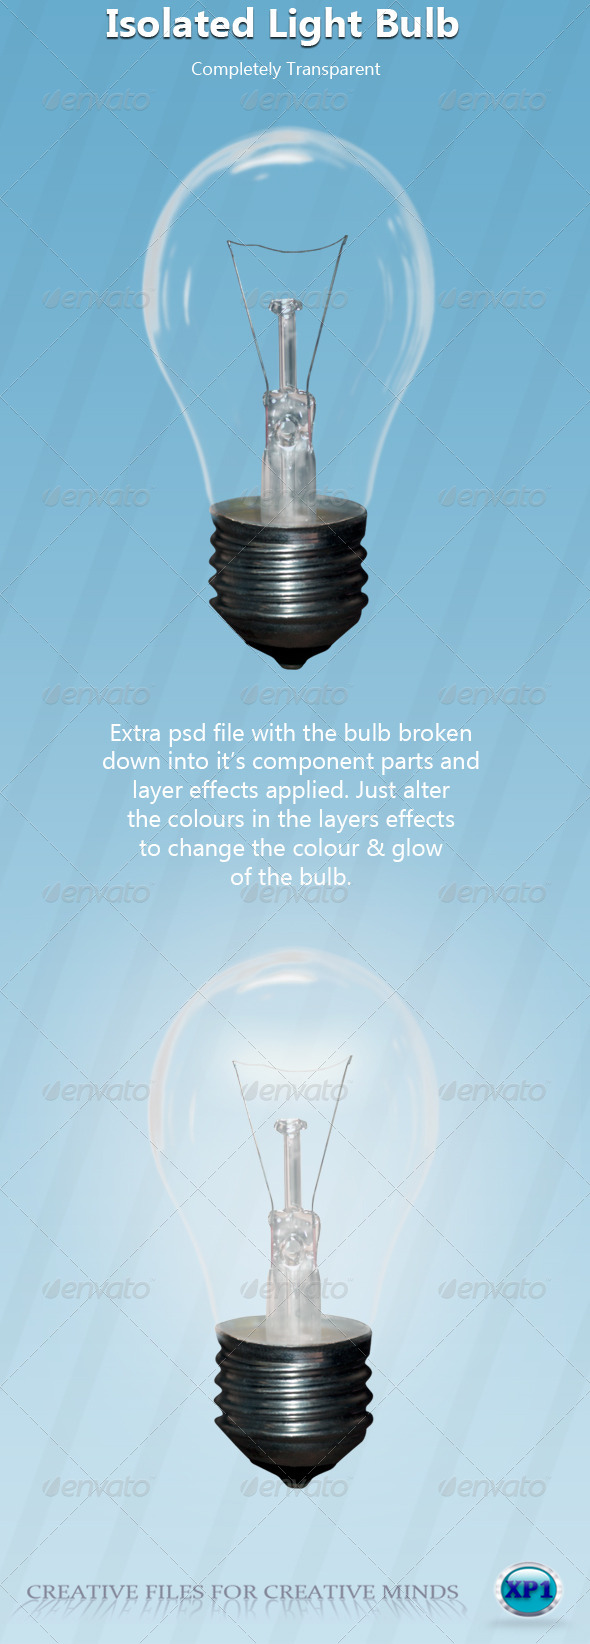 Transparent Light Bulb - Home & Office Isolated Objects